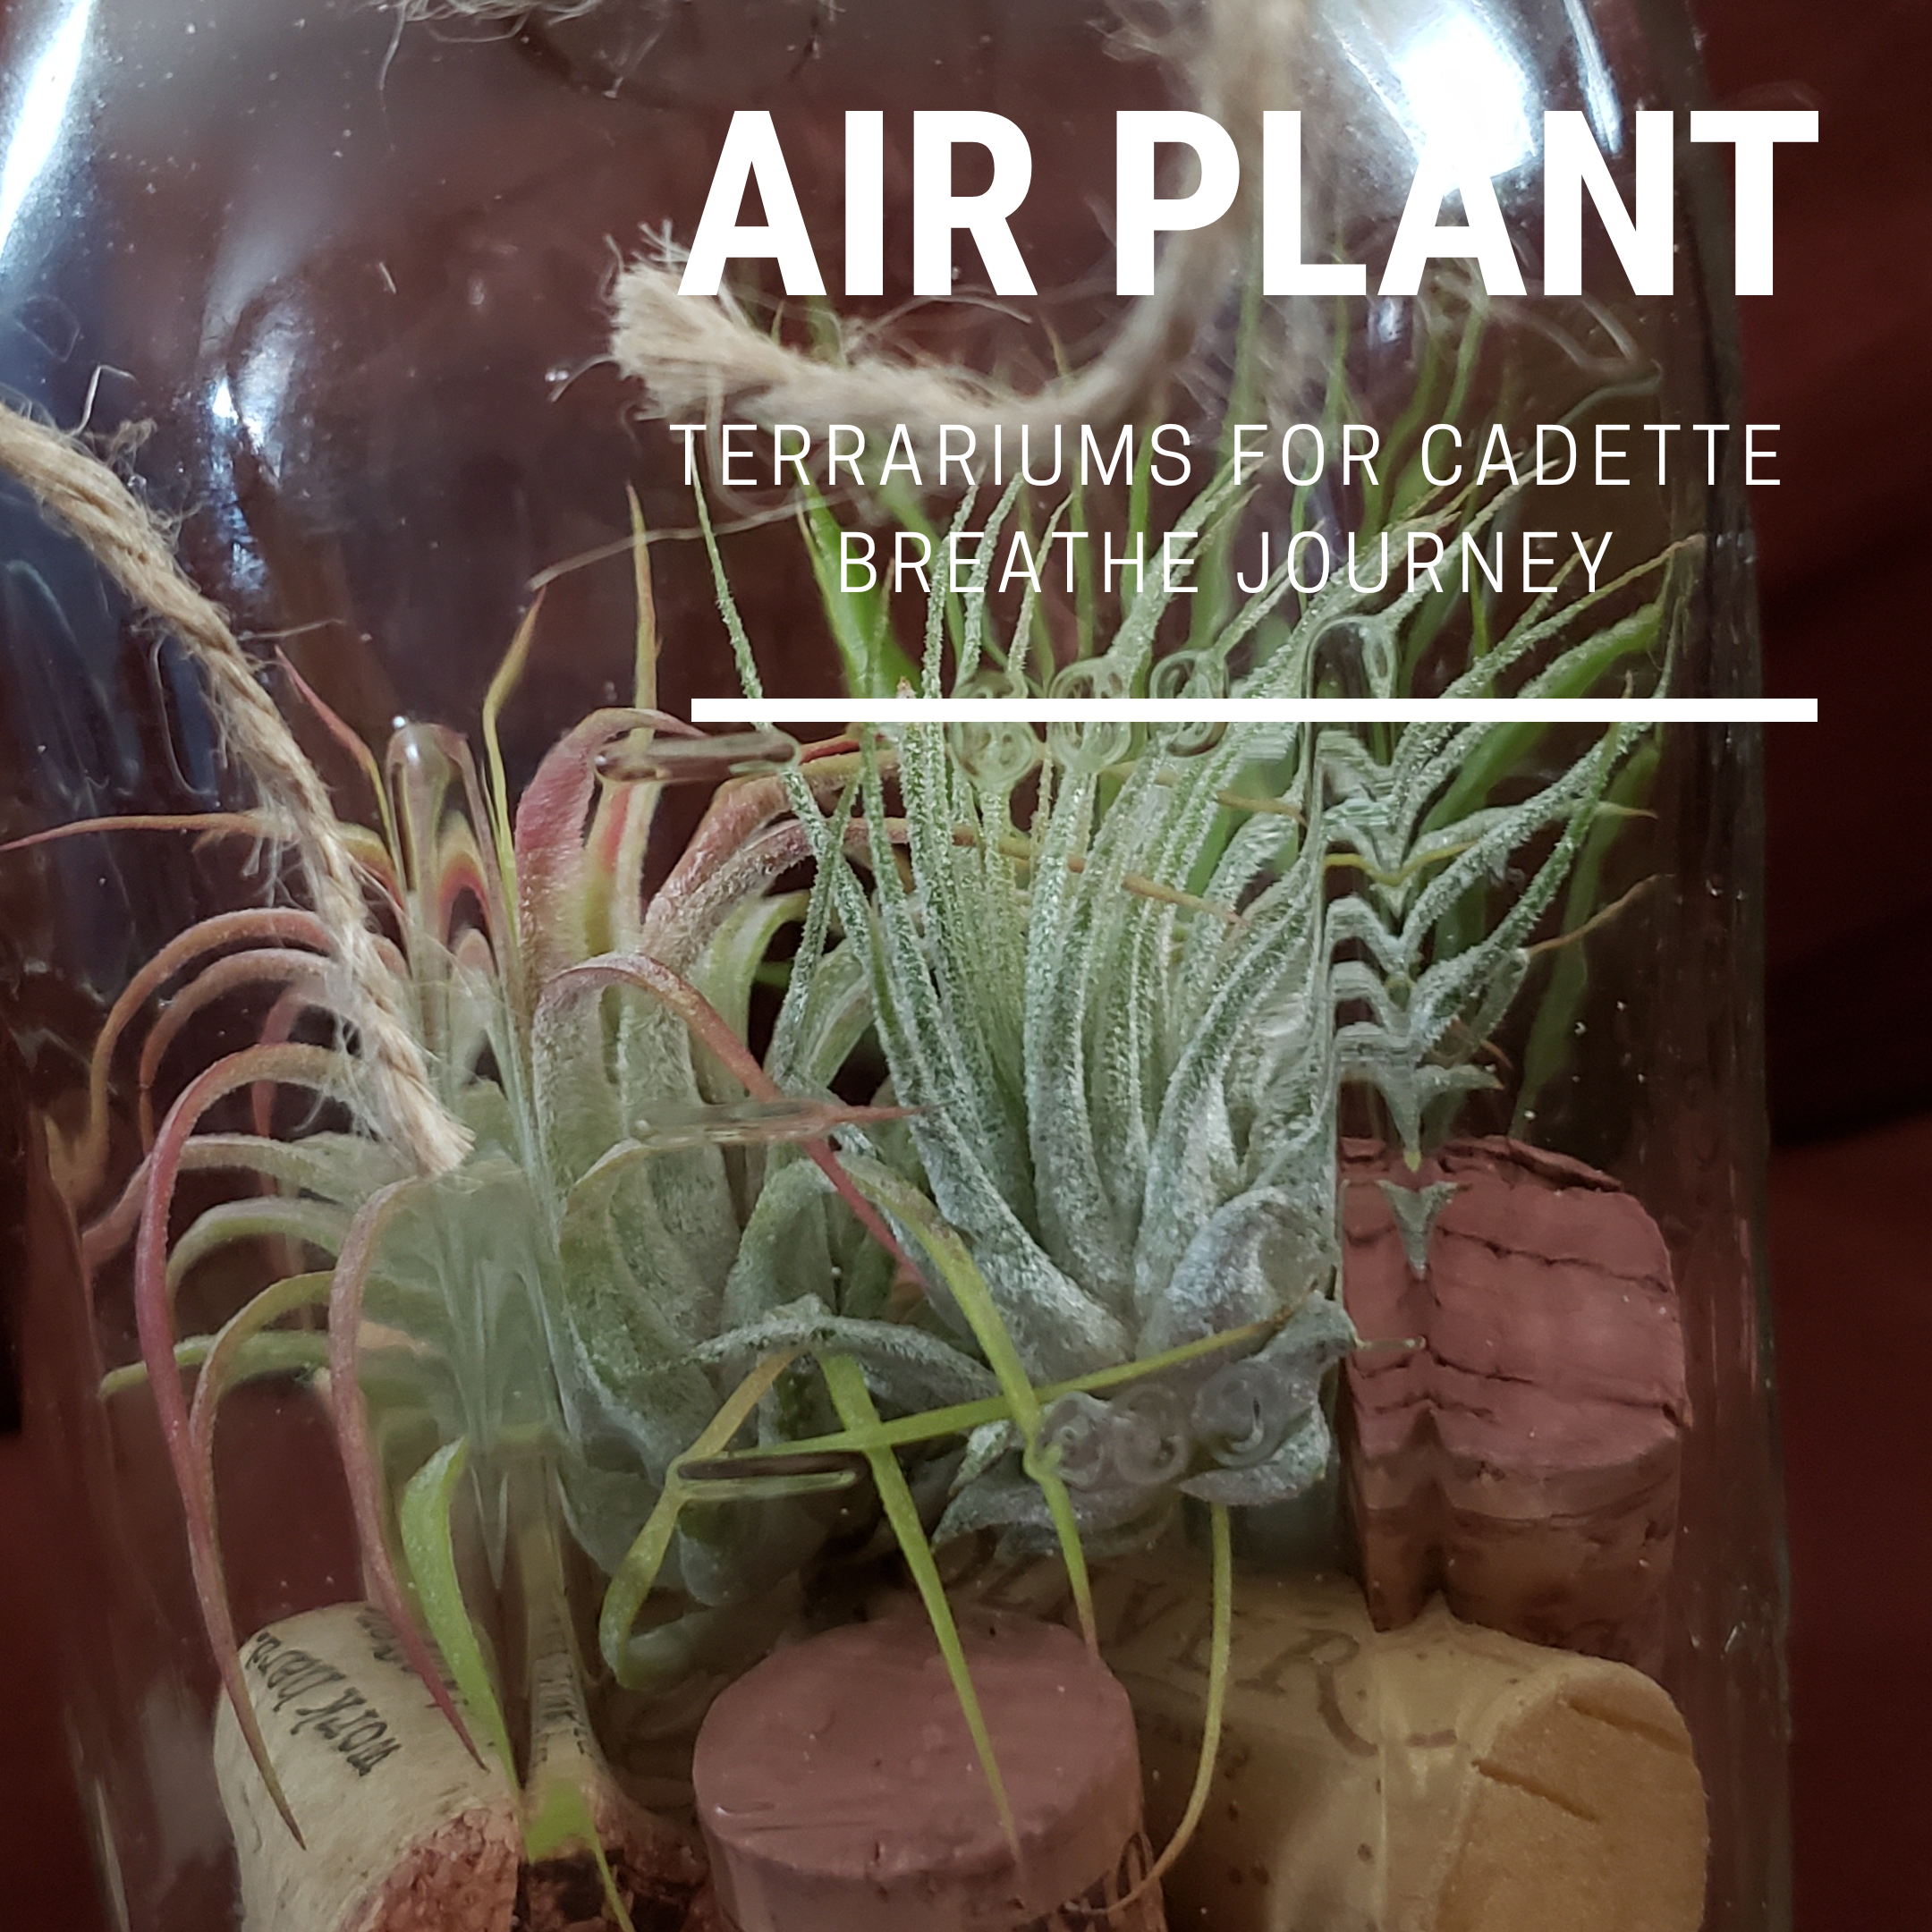 How To Make Cork Air Plant Terrariums For Cadette Breathe Journey Use Resources Wisely